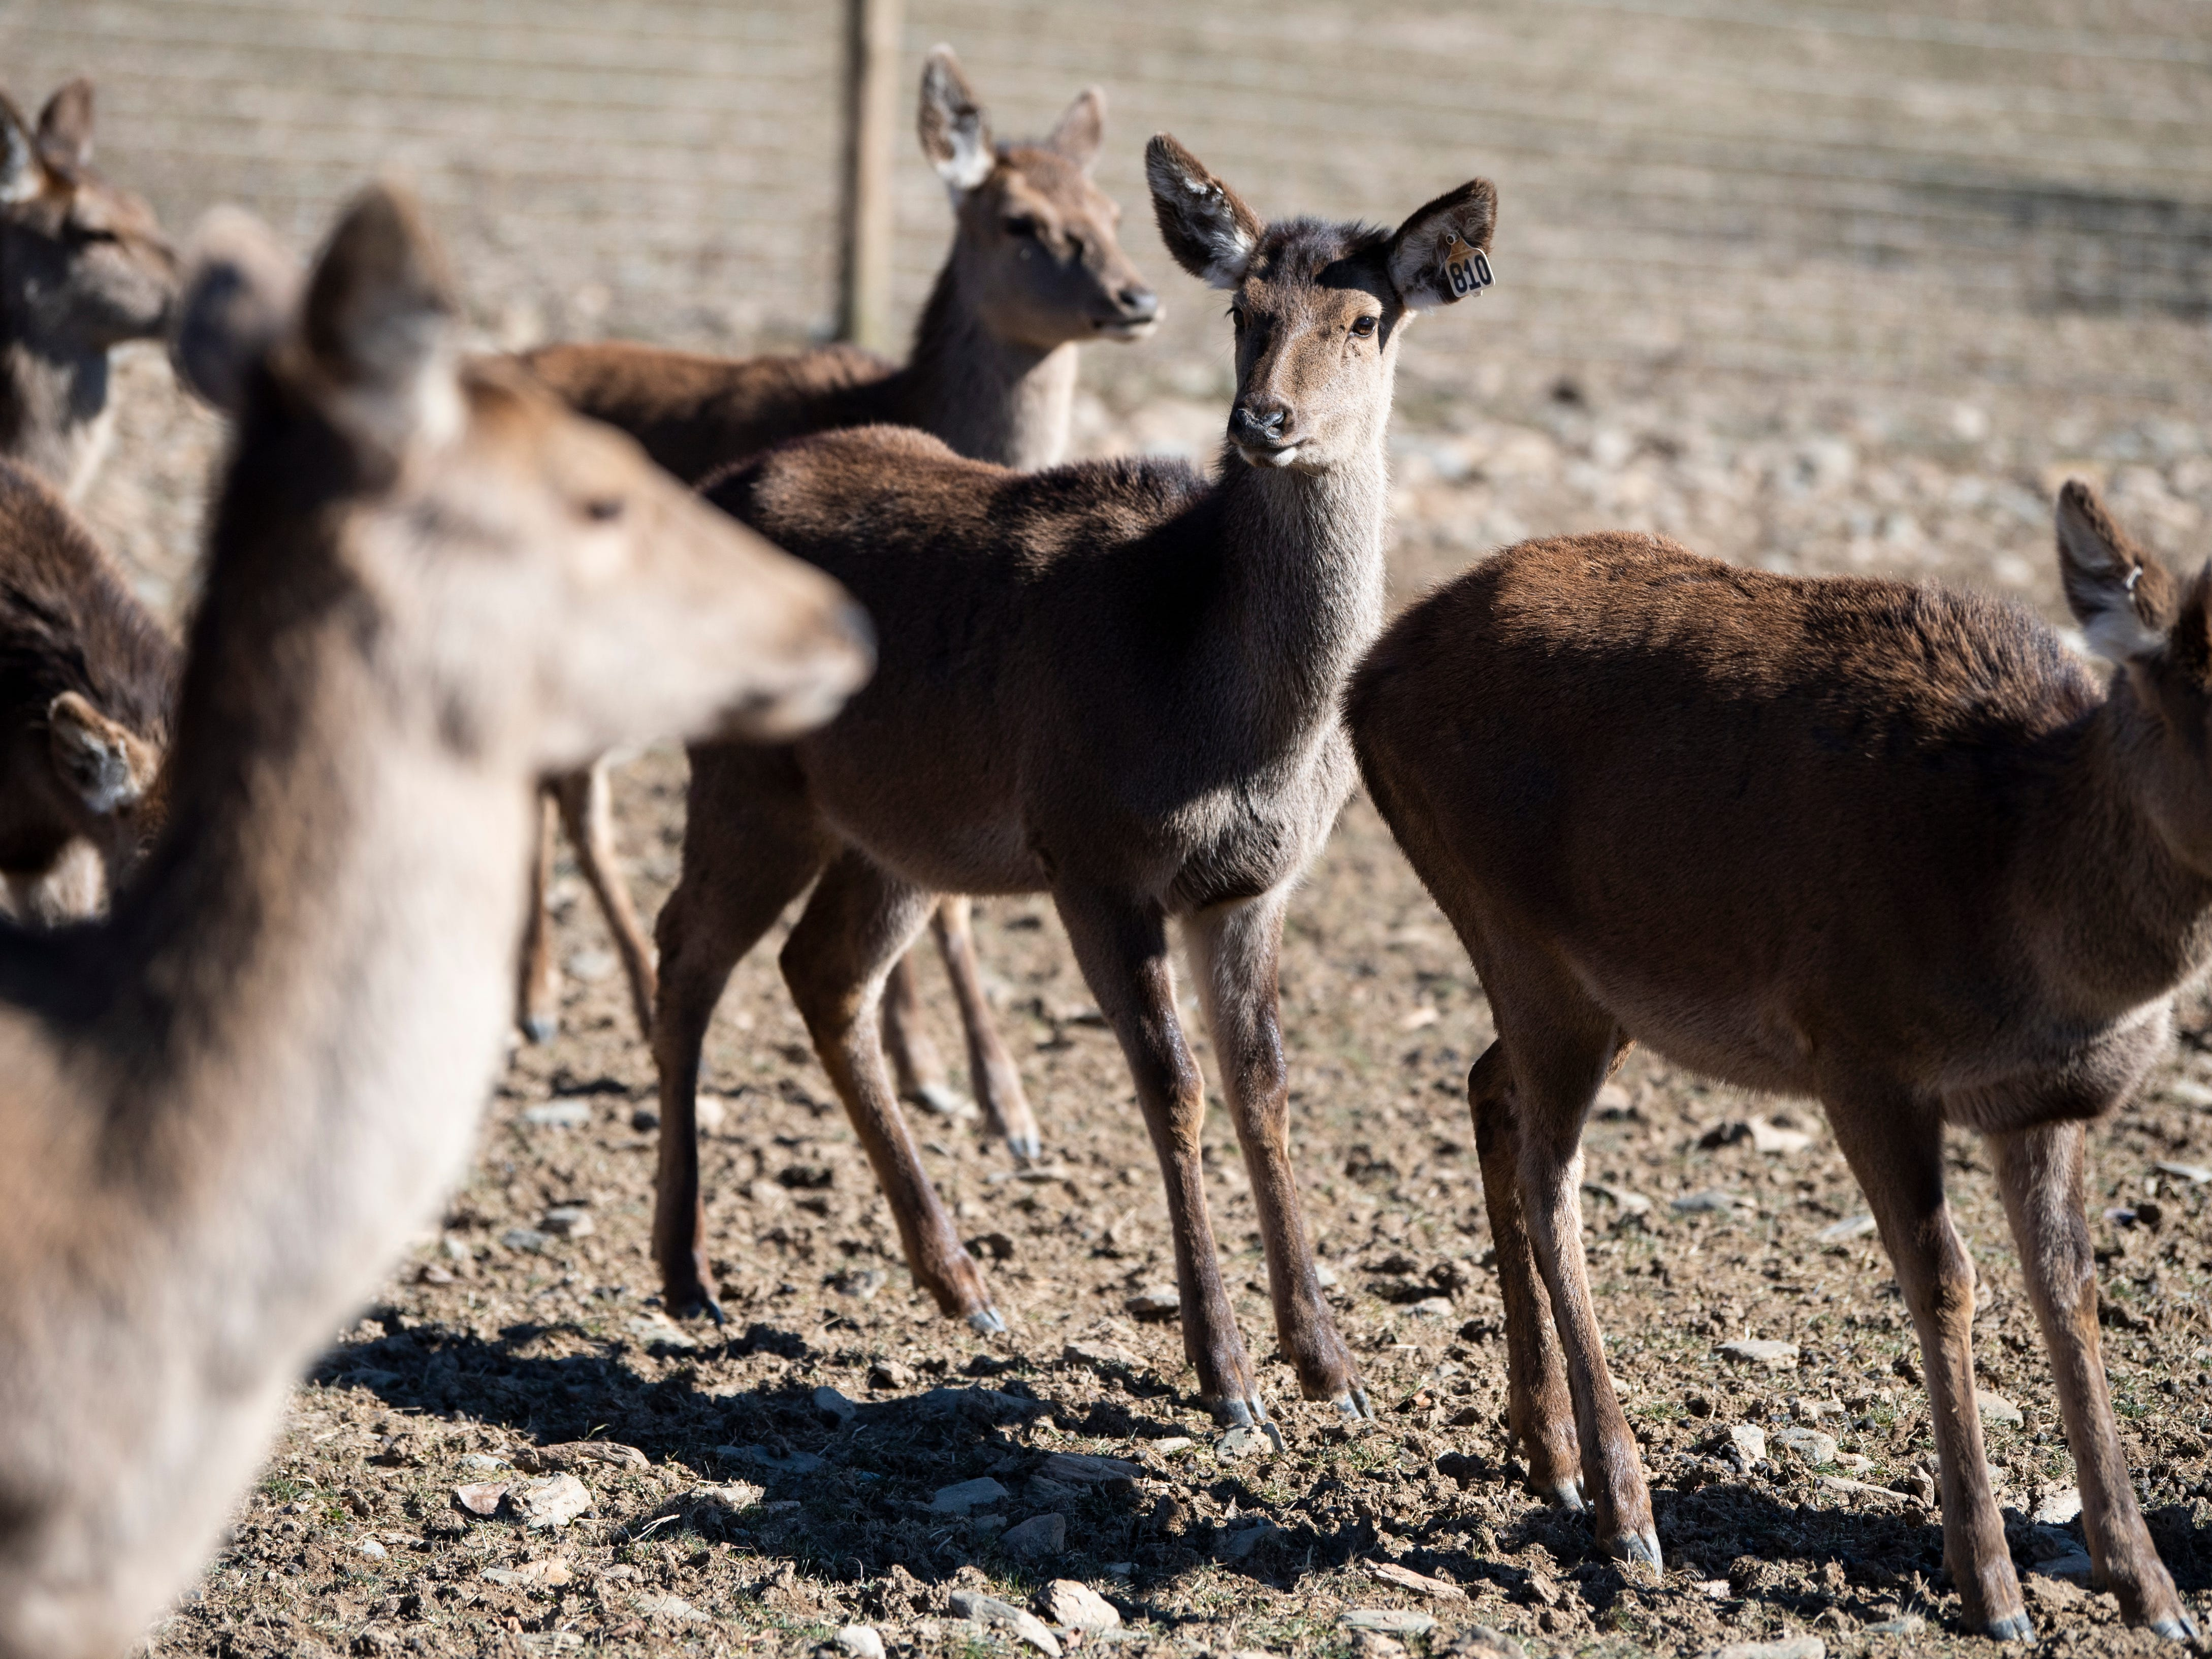 Red deer, bred for venison, meander around the pasture at Highbourne Farms, Monday, Jan. 21, 2019. Highbourne Farms, in Dallastown, breeds Red deer for meat. It's one of the few places in the York-area where venison is readily available for purchase year-round.